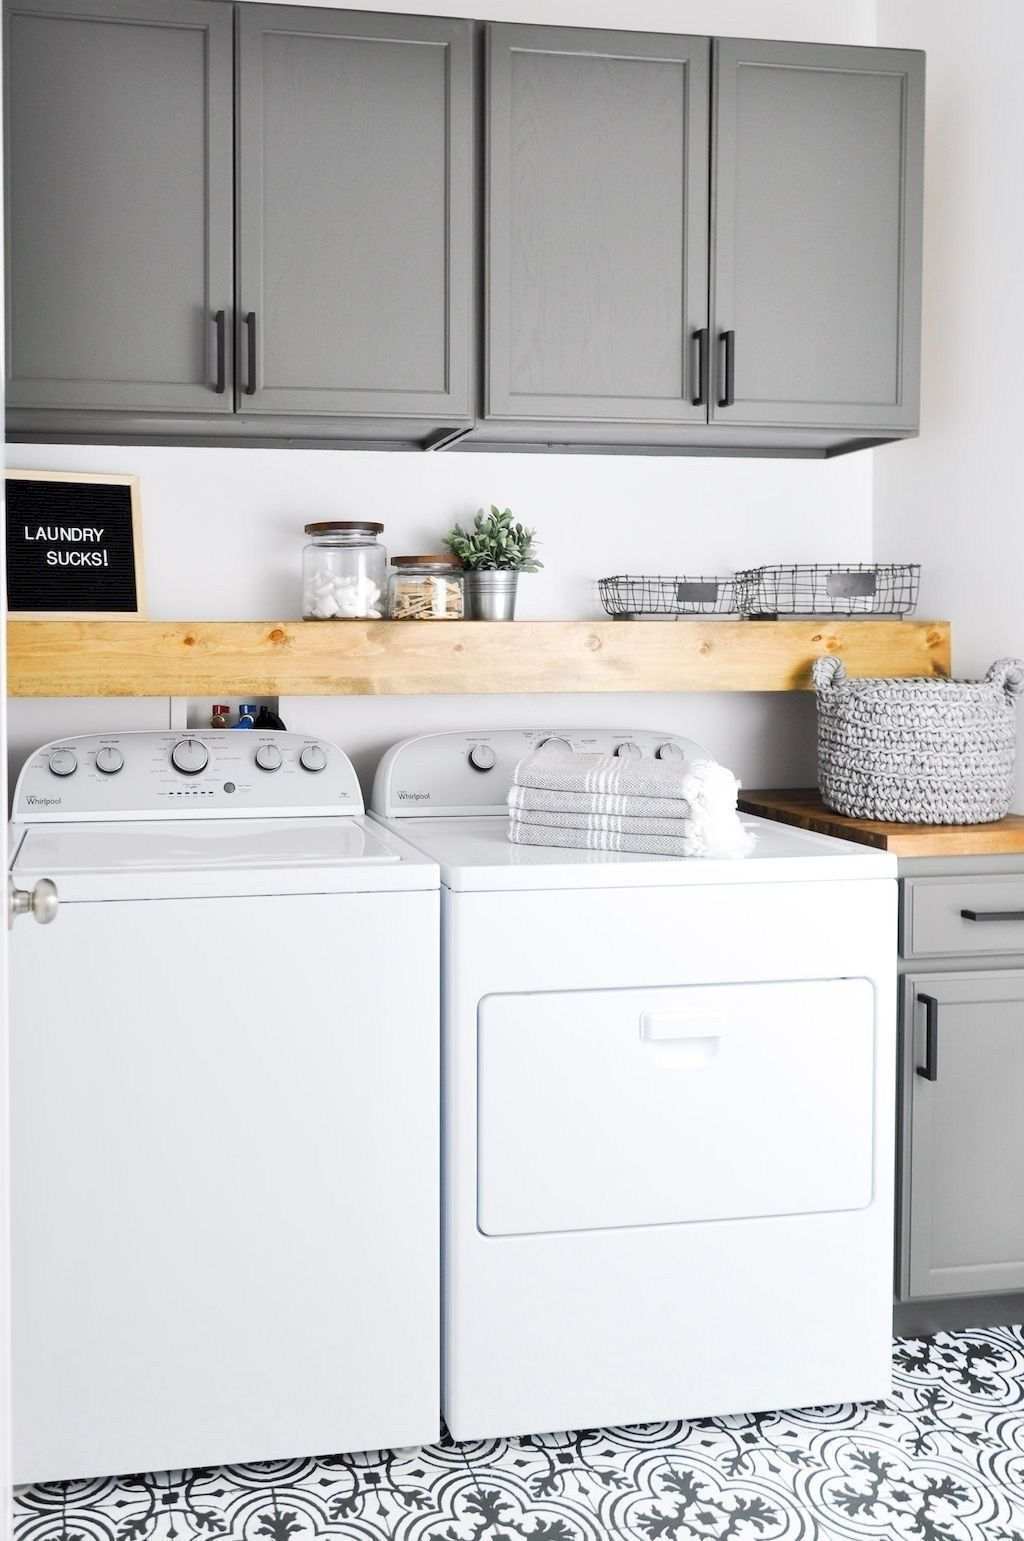 15 Budget Room Makeovers You Have To See: Best Small Laundry Room Decorating Ideas To Inspire You 57